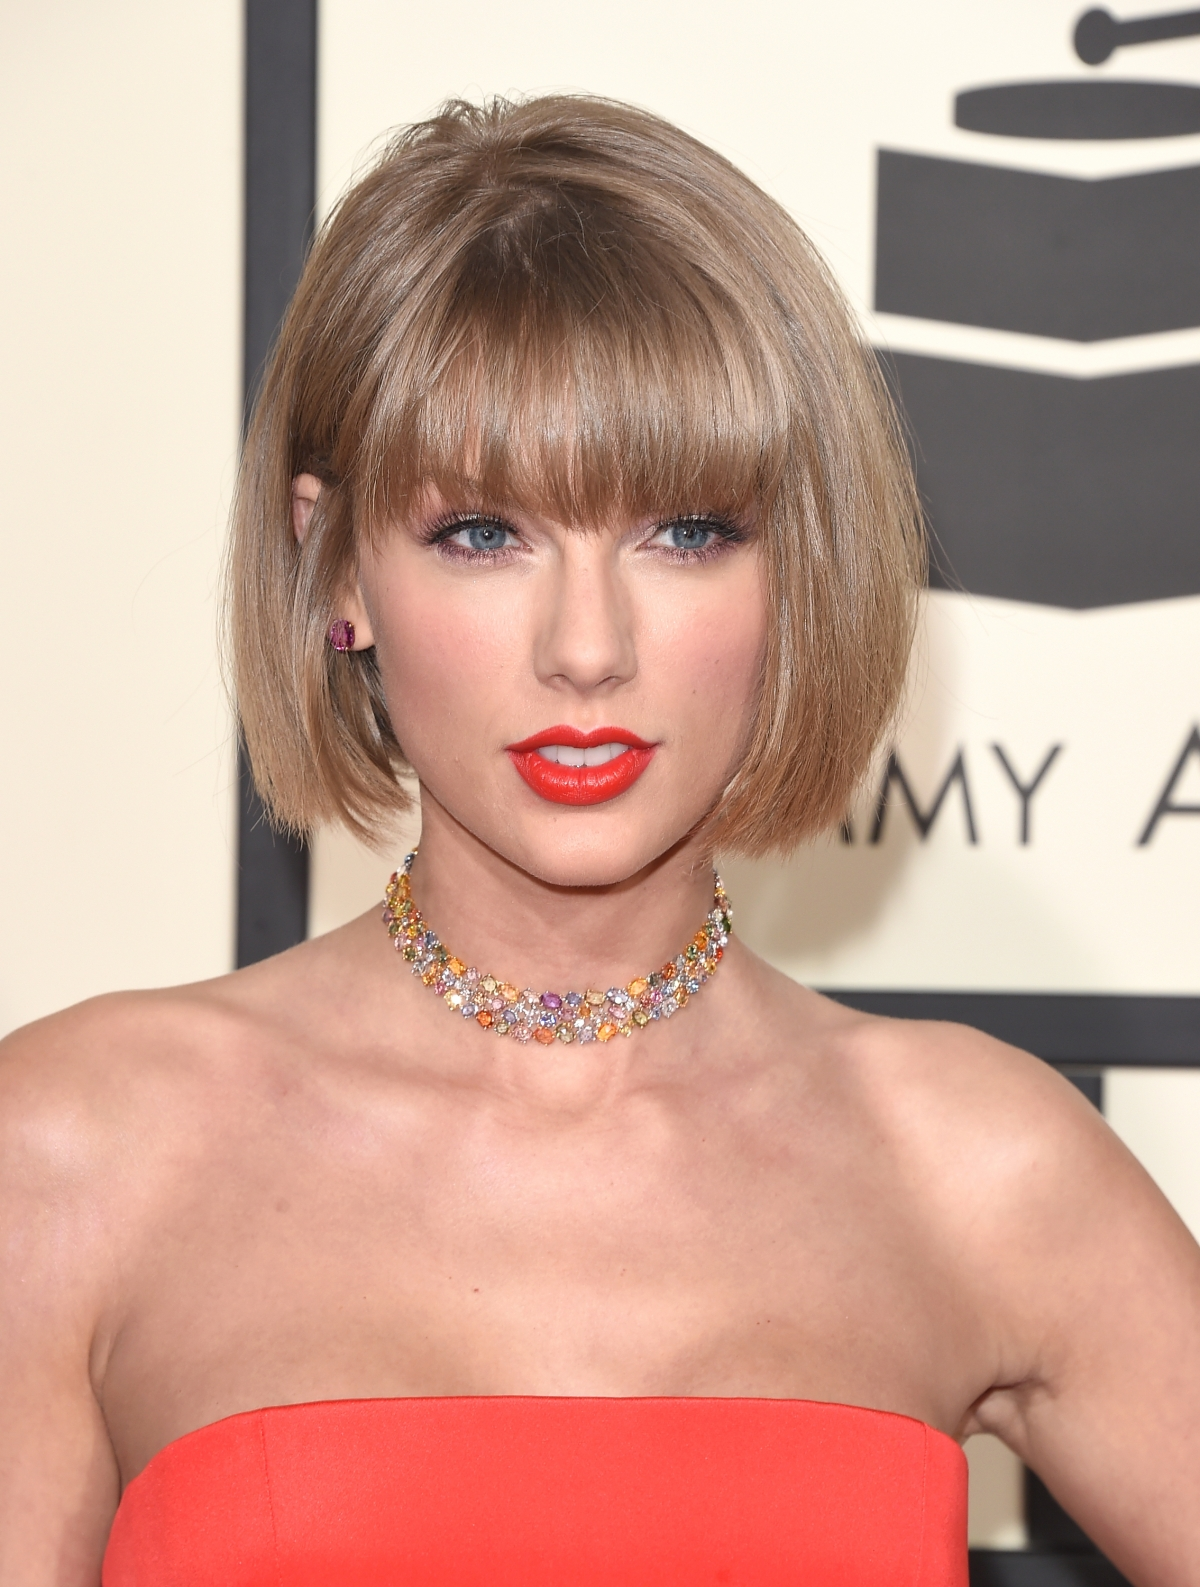 Taylor Swift U0026 39 S Alleged Myspace Page Surfaces And It Has